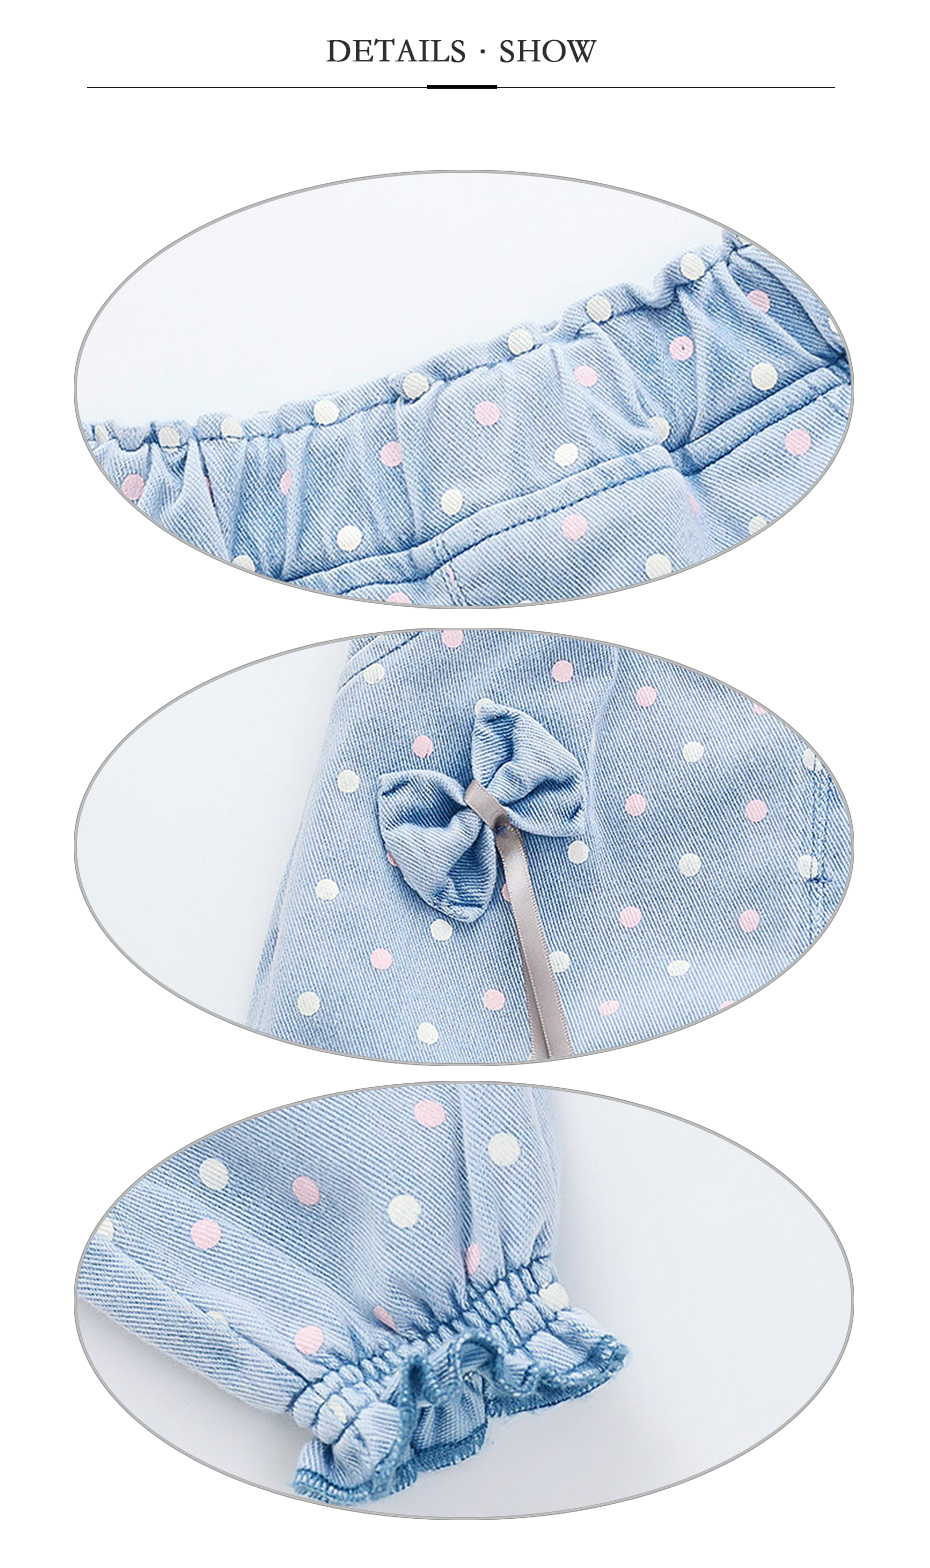 Jeans For Girls Full Dot Pattern Jeans Baby Bow Denim Jeans For Kids Girls Toddler Girl Clothes 12M TO 5